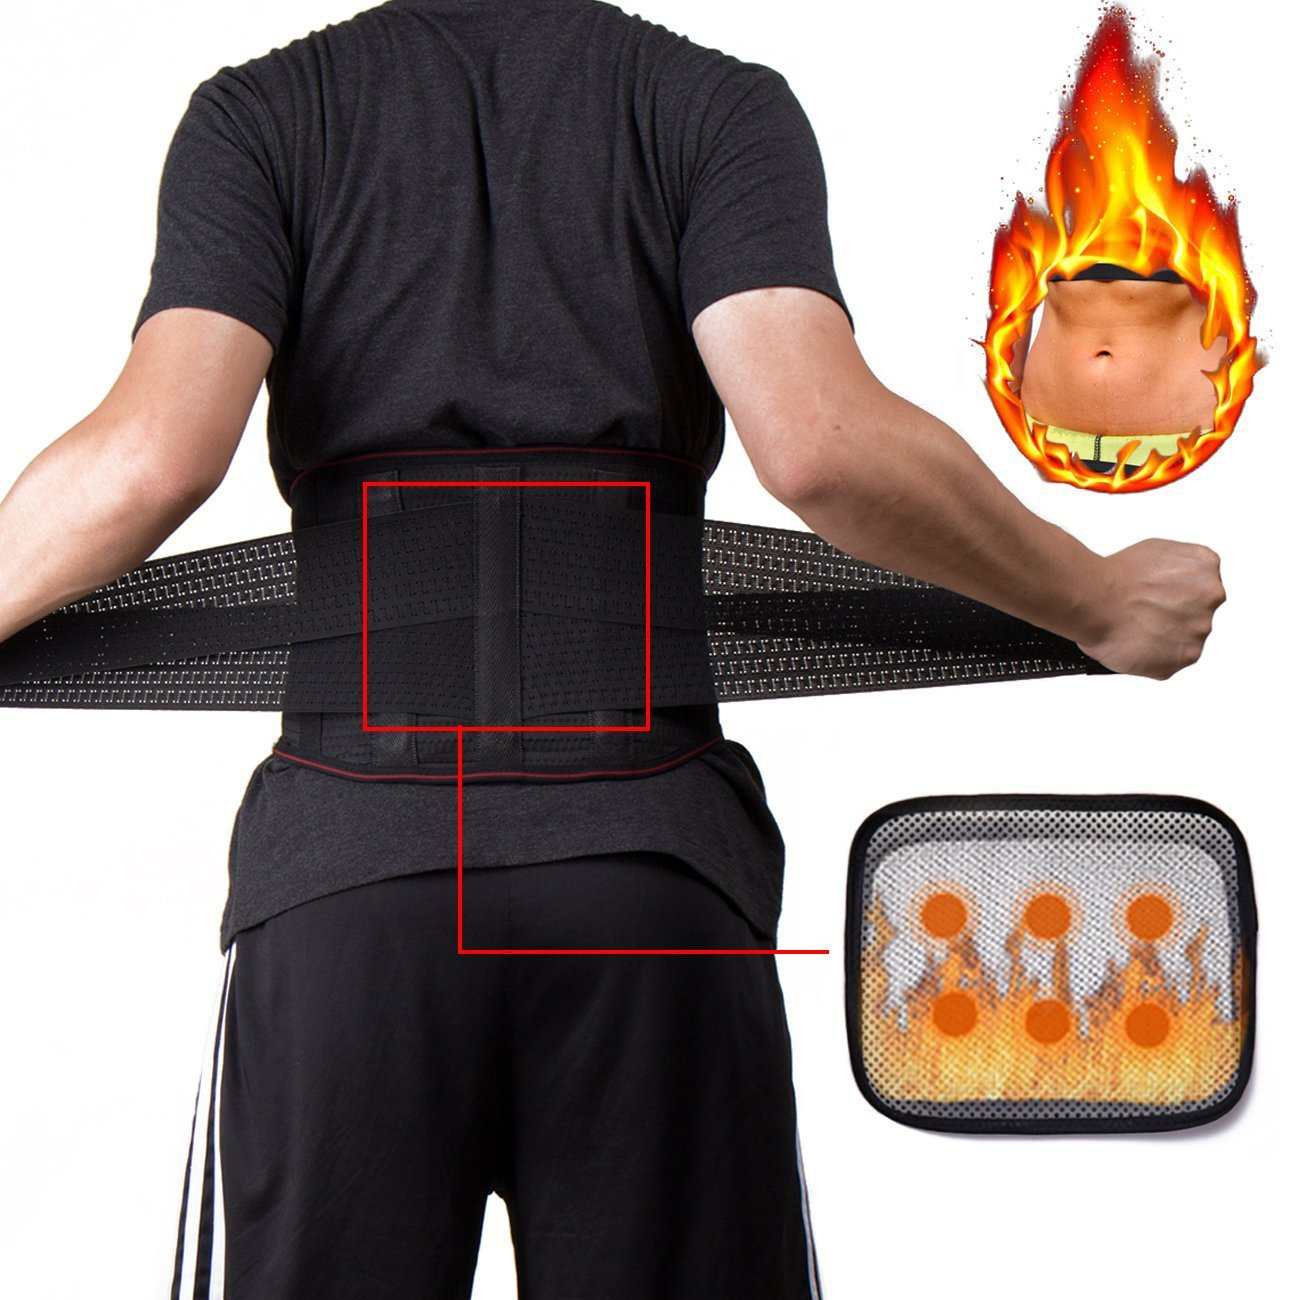 KIWI RATA Waist Trimmer Belt Support Brace, Adjustable Lower Back Lumbar Support Straps - Weight Loss Ab Belt, Breathable Stomach Wrap Waist Trainer Cincher Girdle for Men & Women